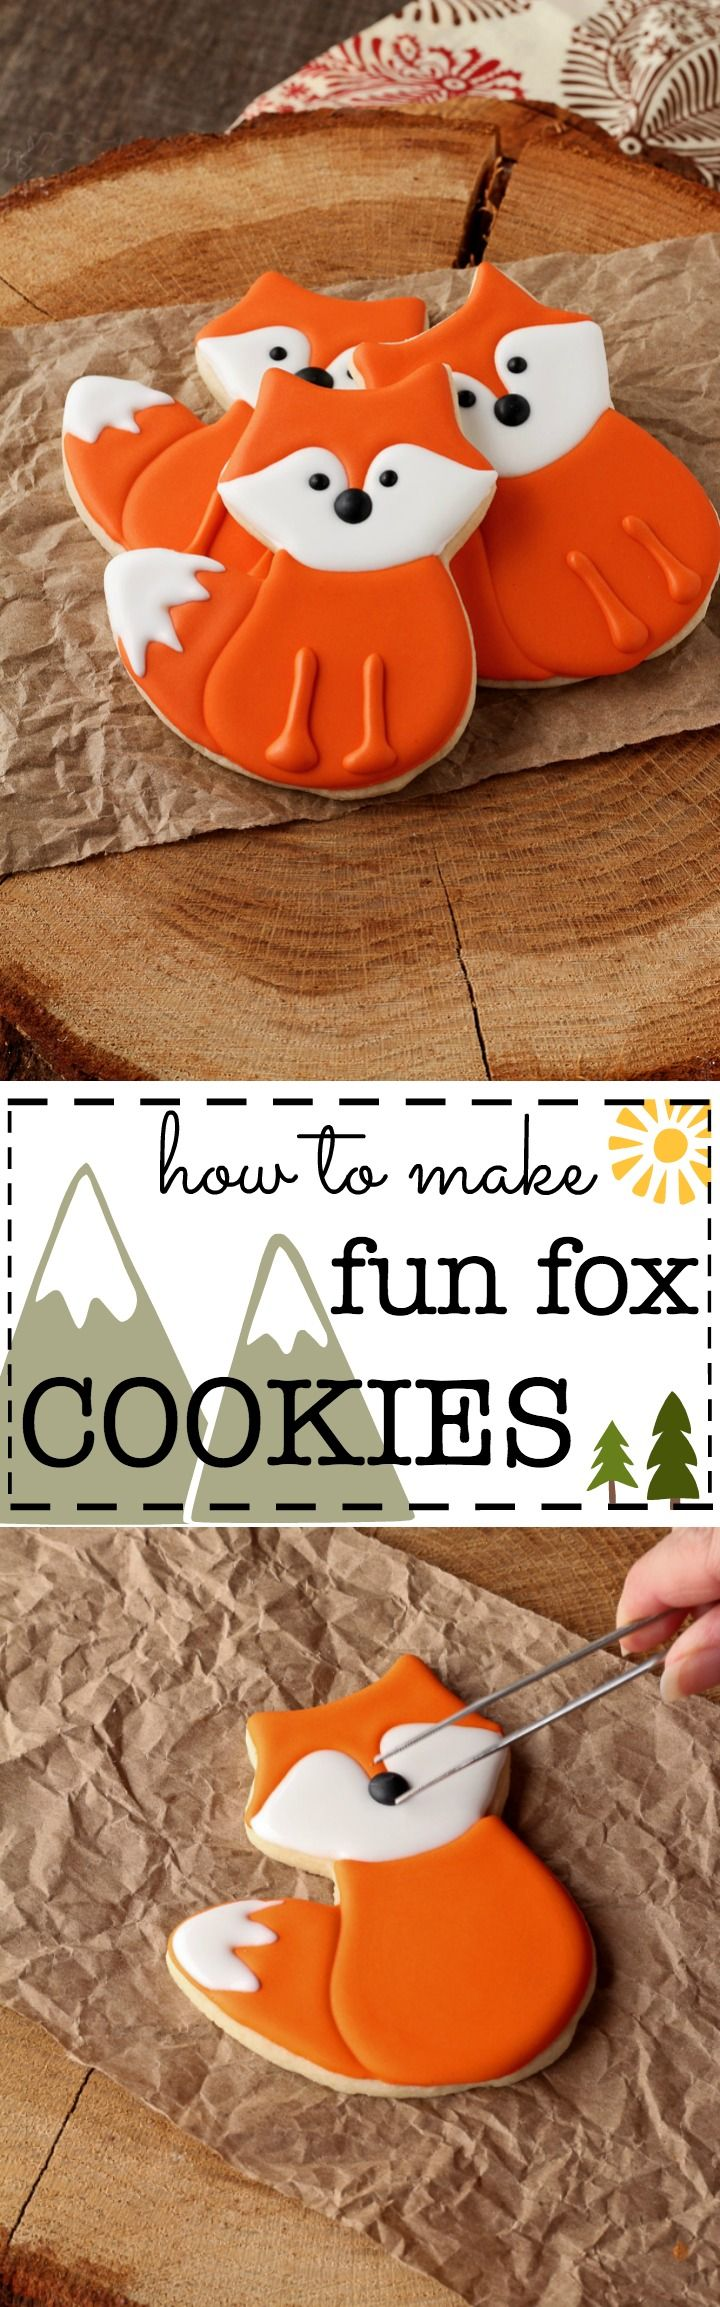 How to Make Fun Little Fox Cookies with a Video Tutorial | The Bearfoot Baker